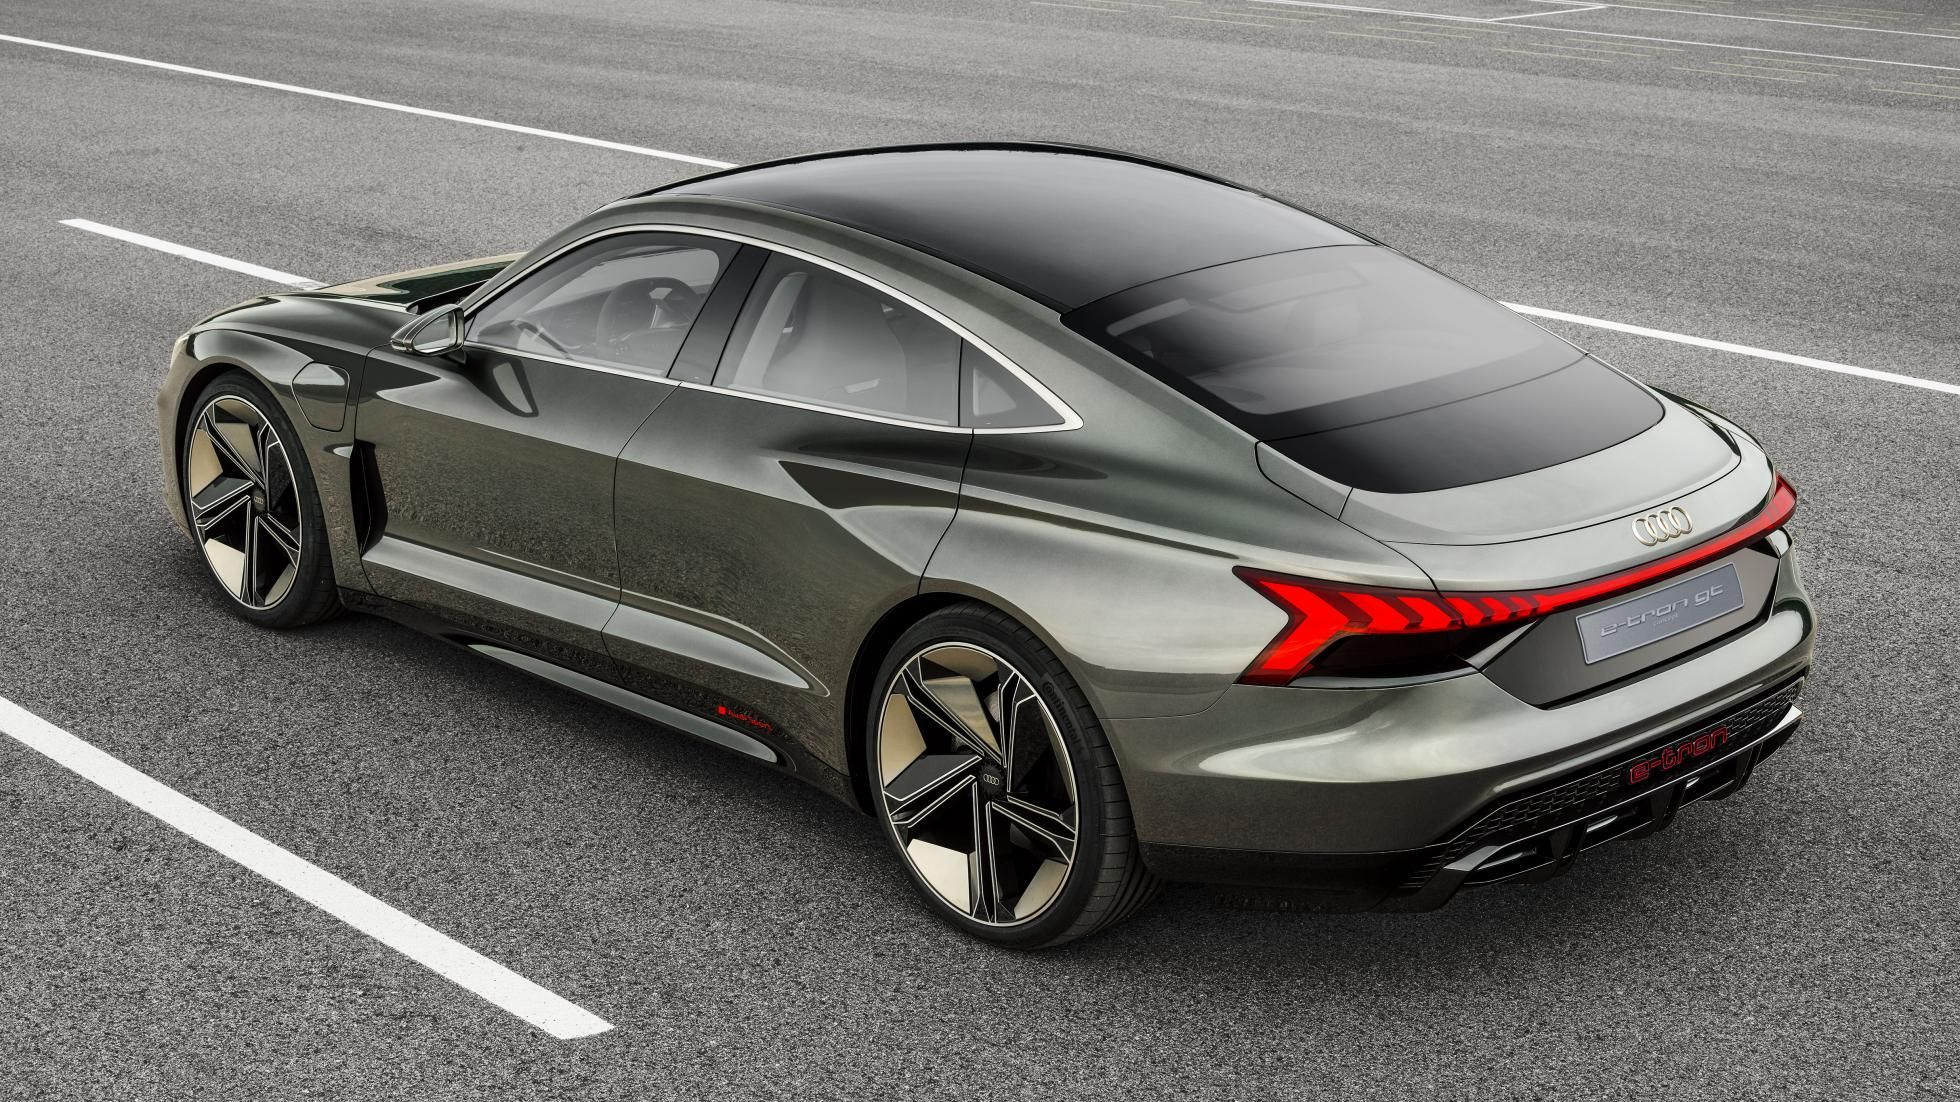 This Is Audi S New 590bhp E Tron Gt Concept Electric Sports Car Audi Audi Cars